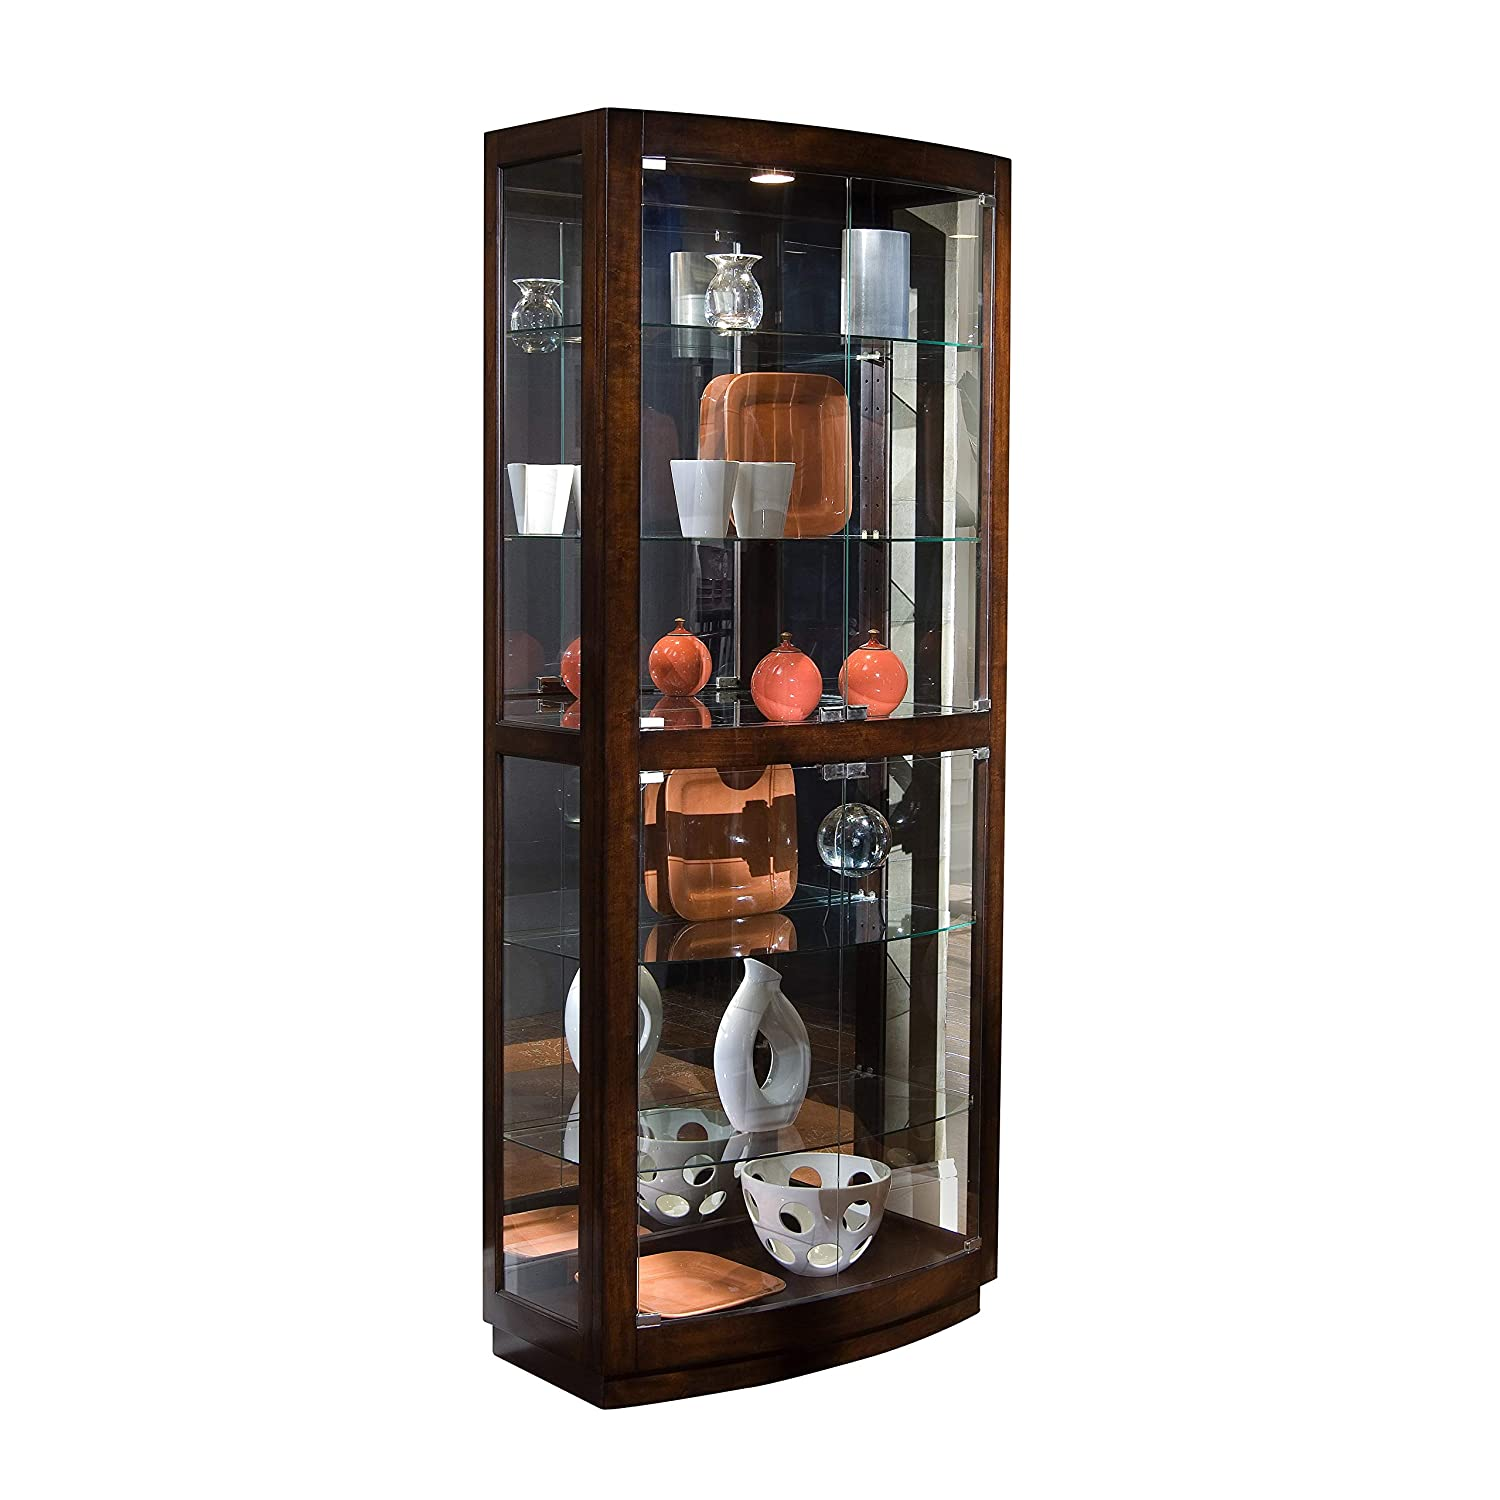 SOFAWEB.COM Brown Finish Transitional Front 2-Door Glass Curio Cabinet 34 x 17 x 80